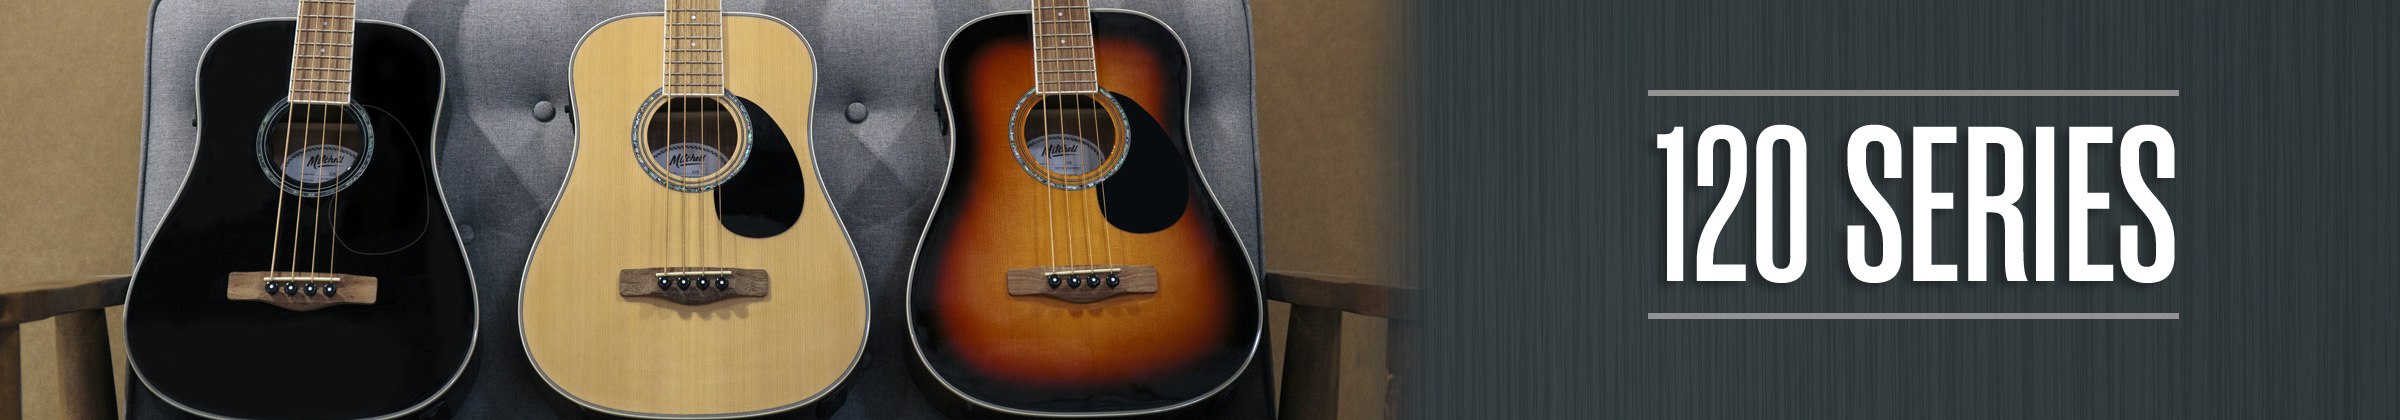 Mitchell Guitars 120 Series EZB